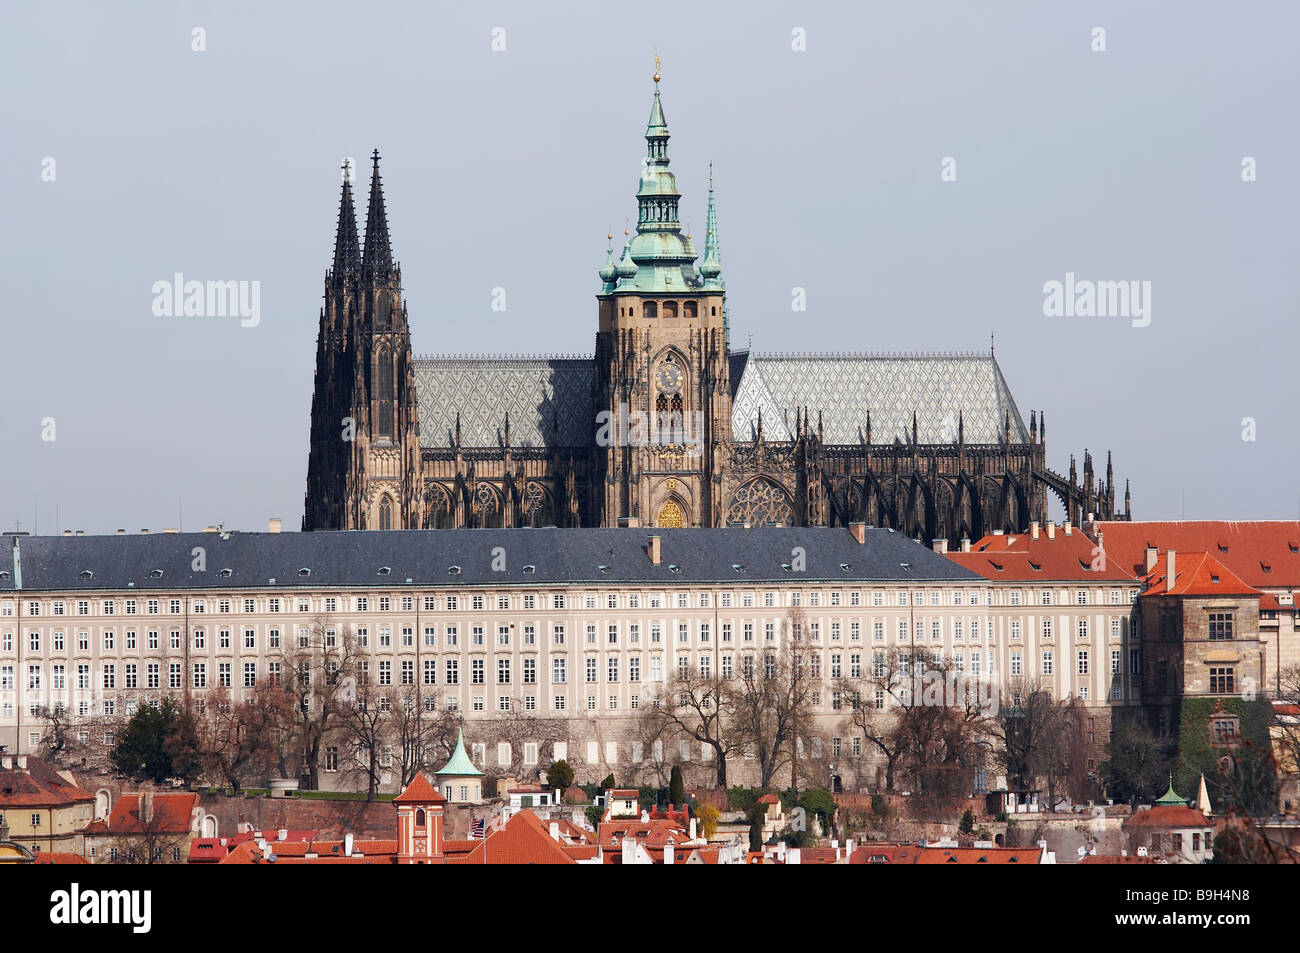 Hradcany - Cathedral of St Vitus and Prague castle - the coronation cathedral of the Bohemian sovereigns - Stock Image